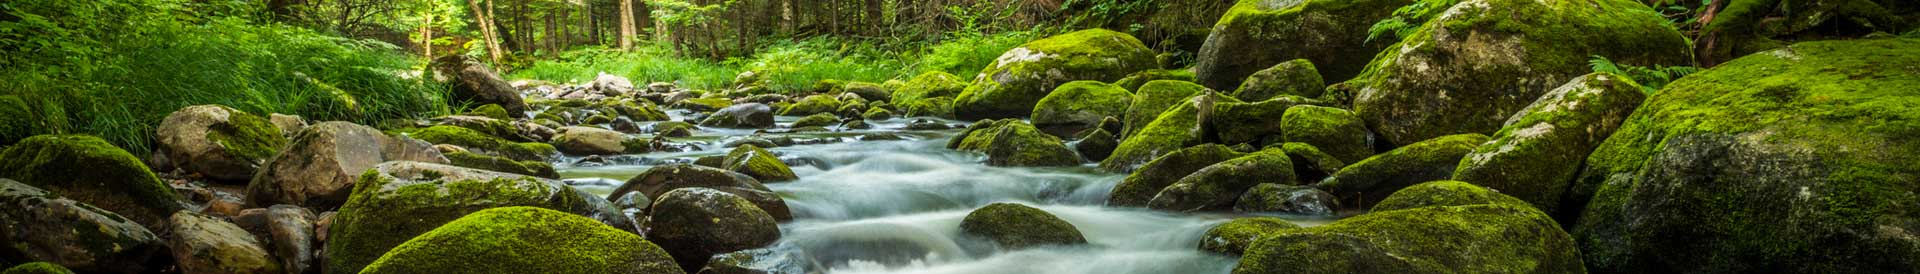 Flowing creek with lush, green foliage